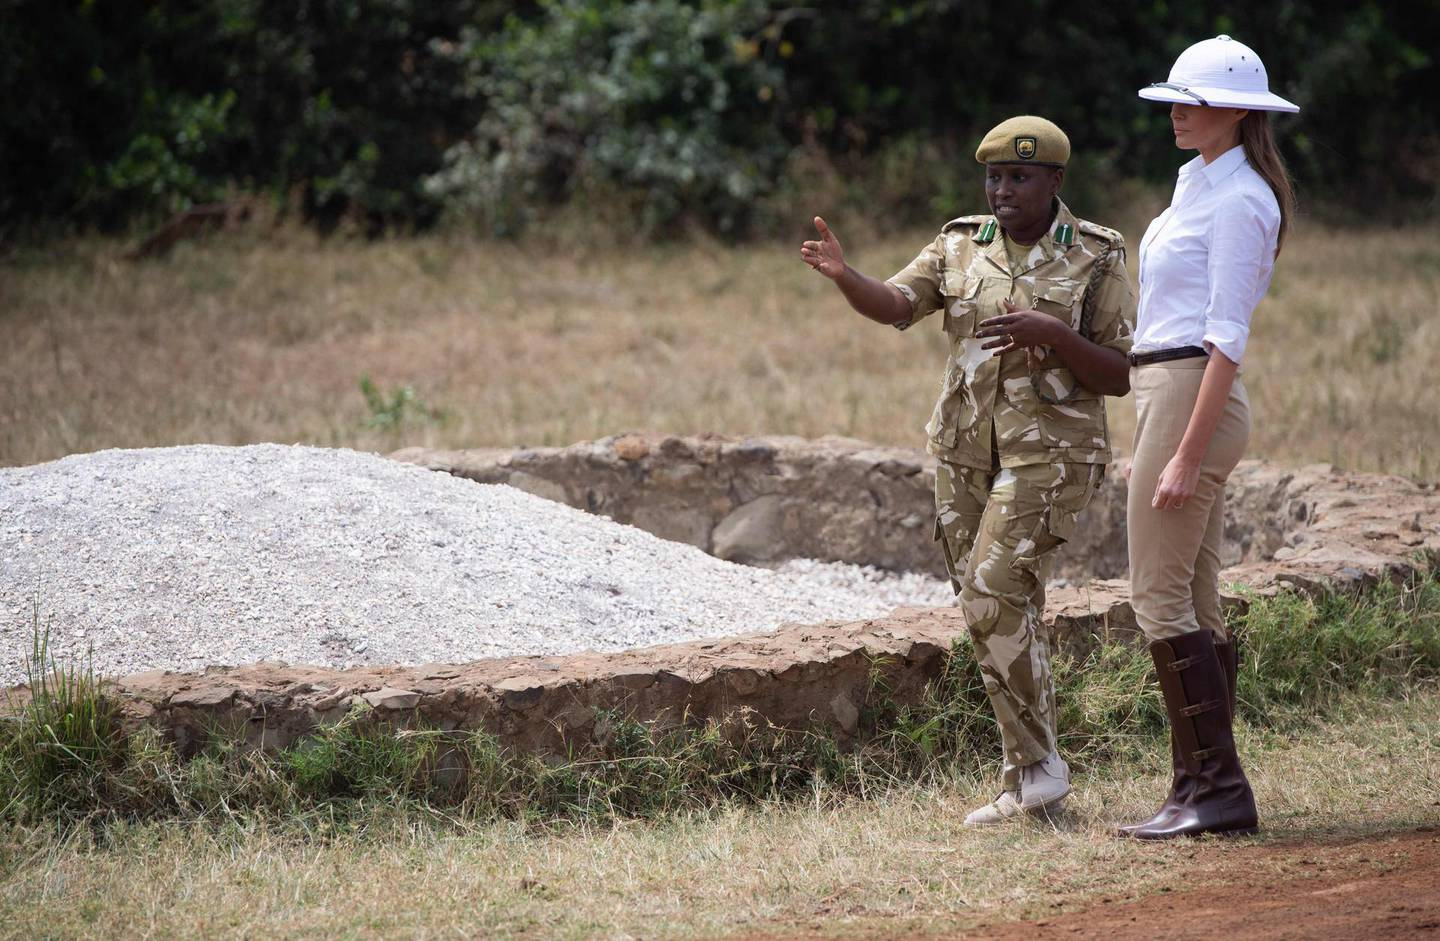 UUS First Lady Melania Trump talks with Nelly Palmeris (L), Park Manager, as they view an ivory burning site at the Nairobi National Park in Nairobi on October 5, 2018, during the third leg of her solo tour of Africa.  / AFP / SAUL LOEB